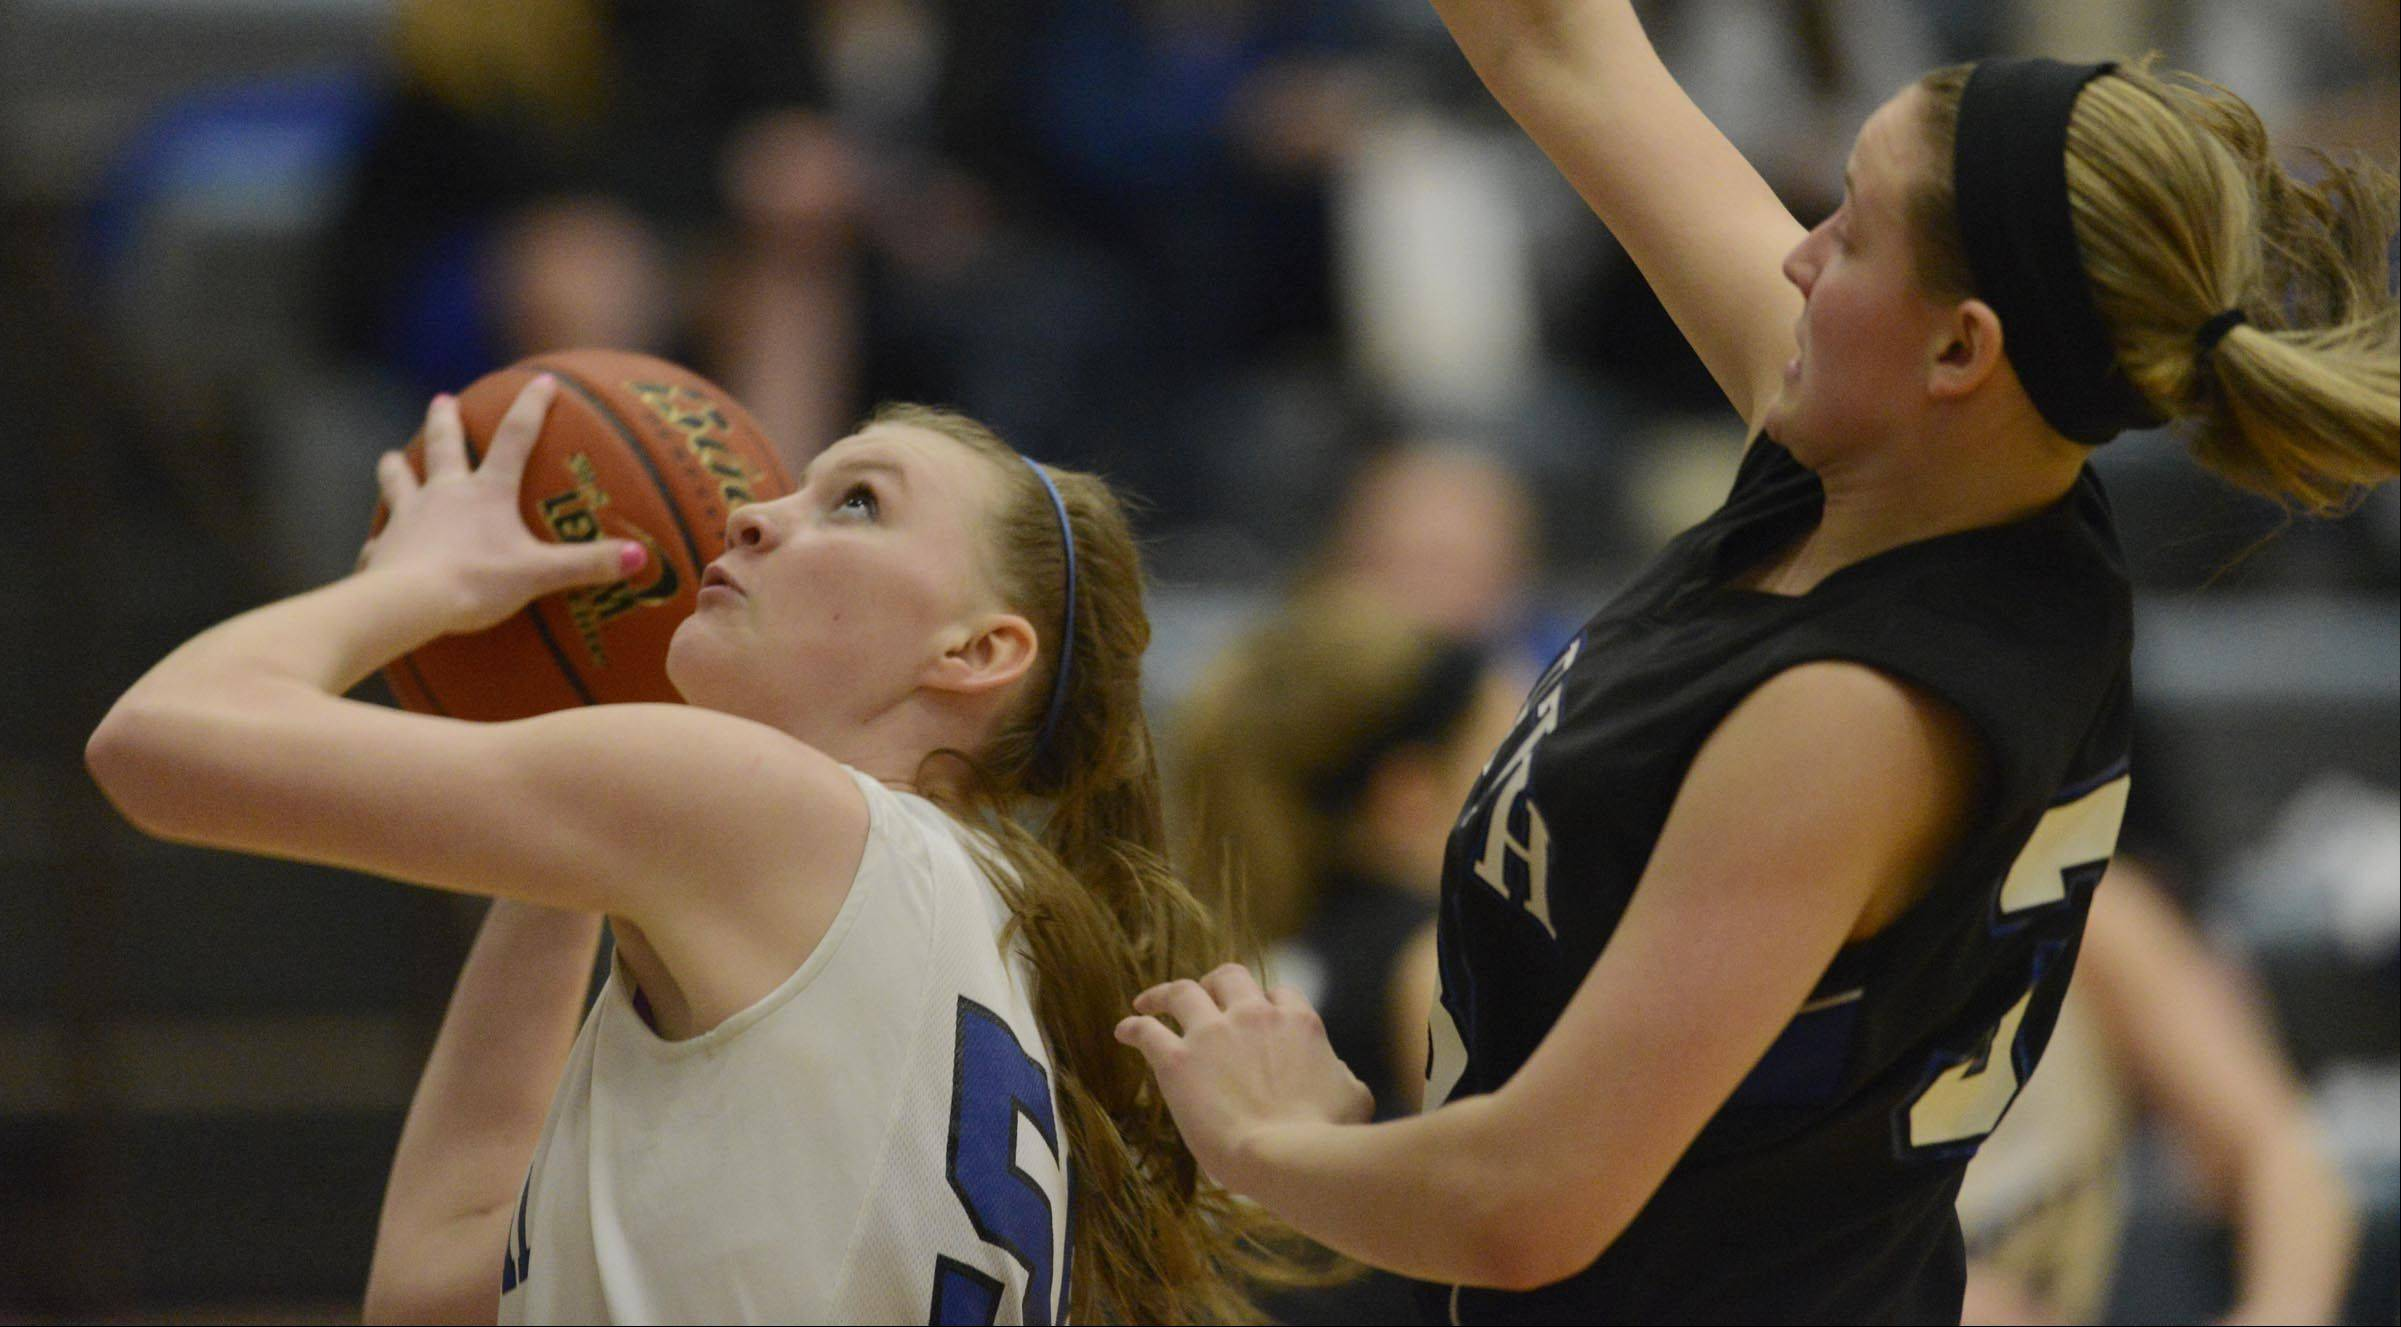 Images: St. Charles North vs. Burlington Central, girls basketball